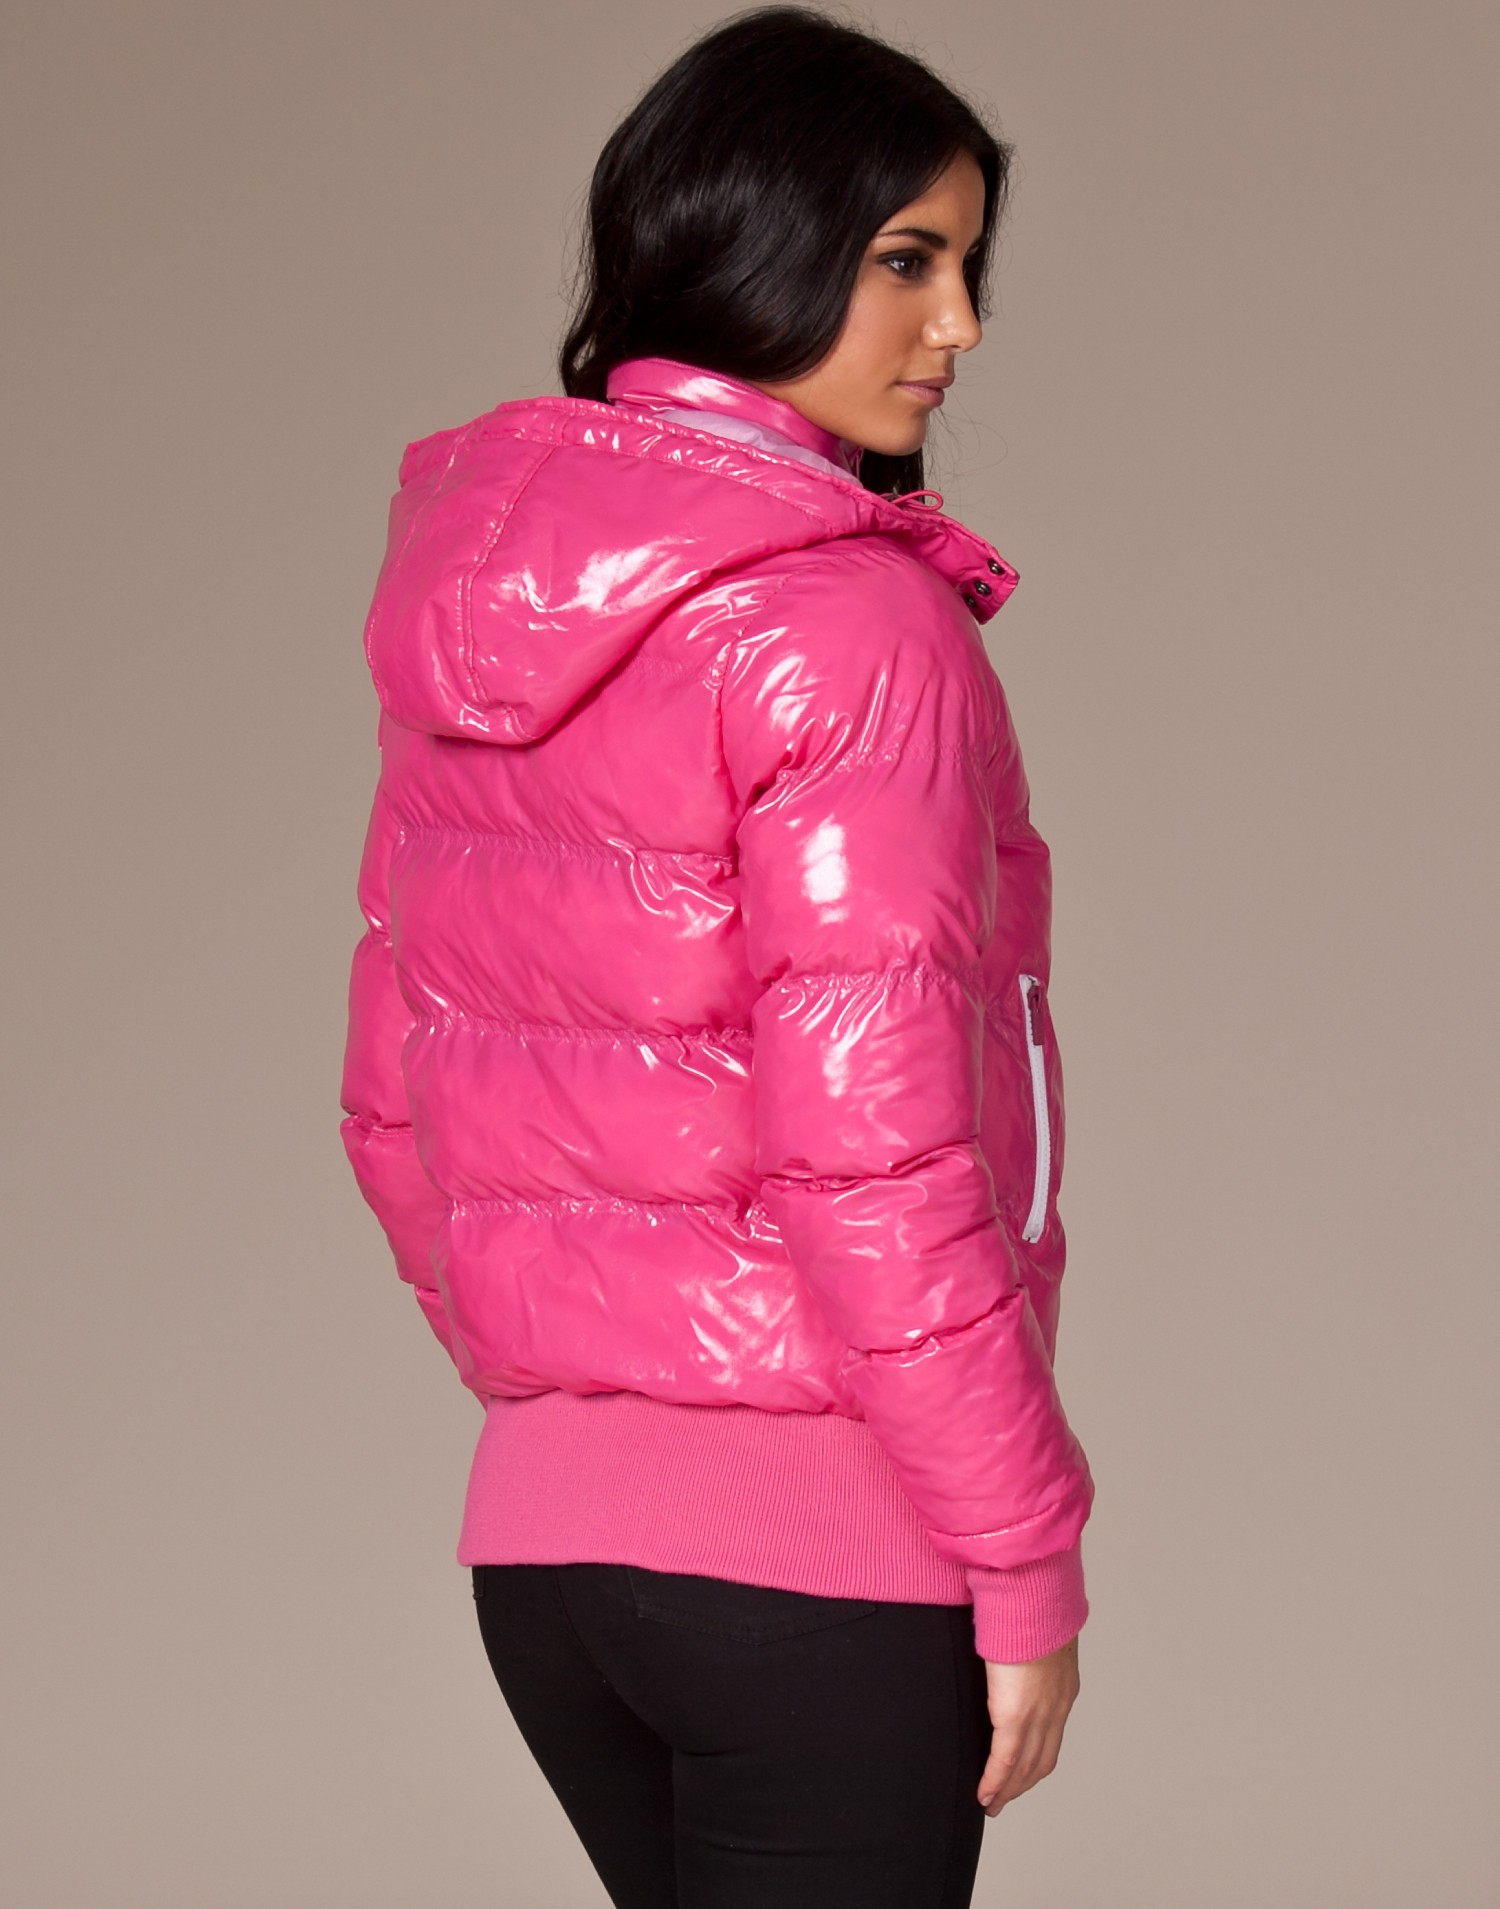 Pink Sexy By Sweden 'Sexy W' down jacket | SHINY NYLON